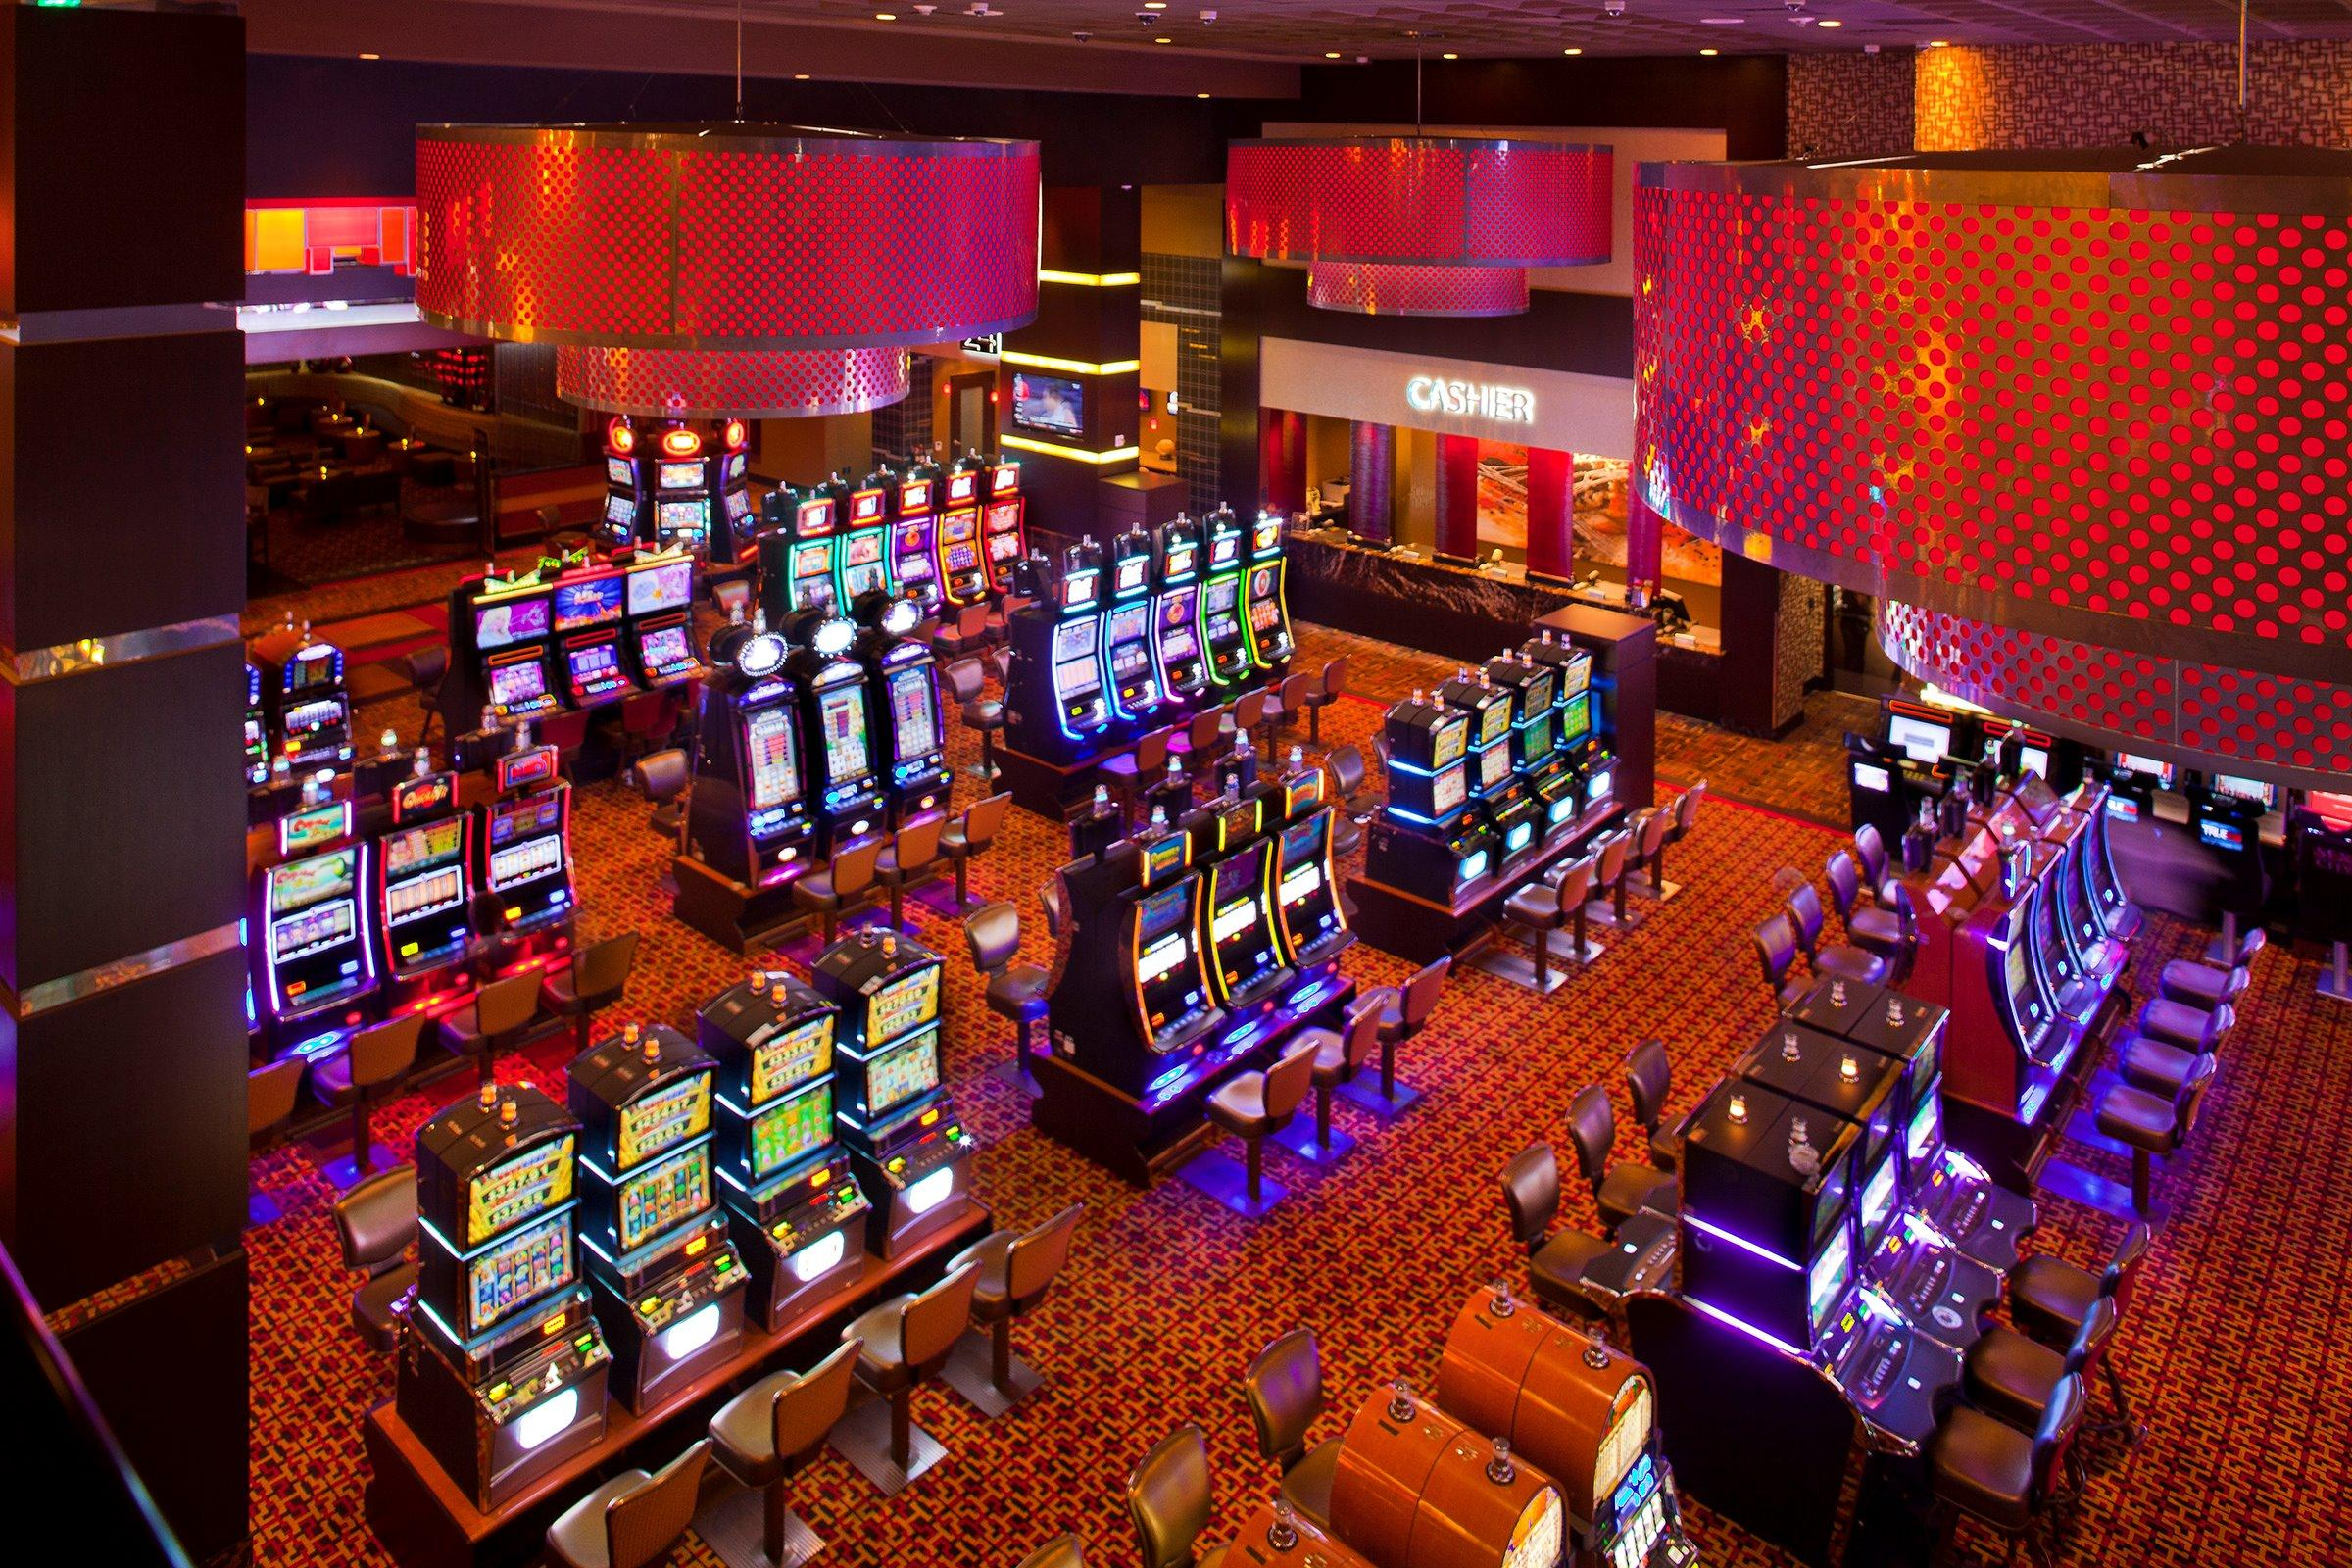 Casino in new west ft. mcdowell casino arizona